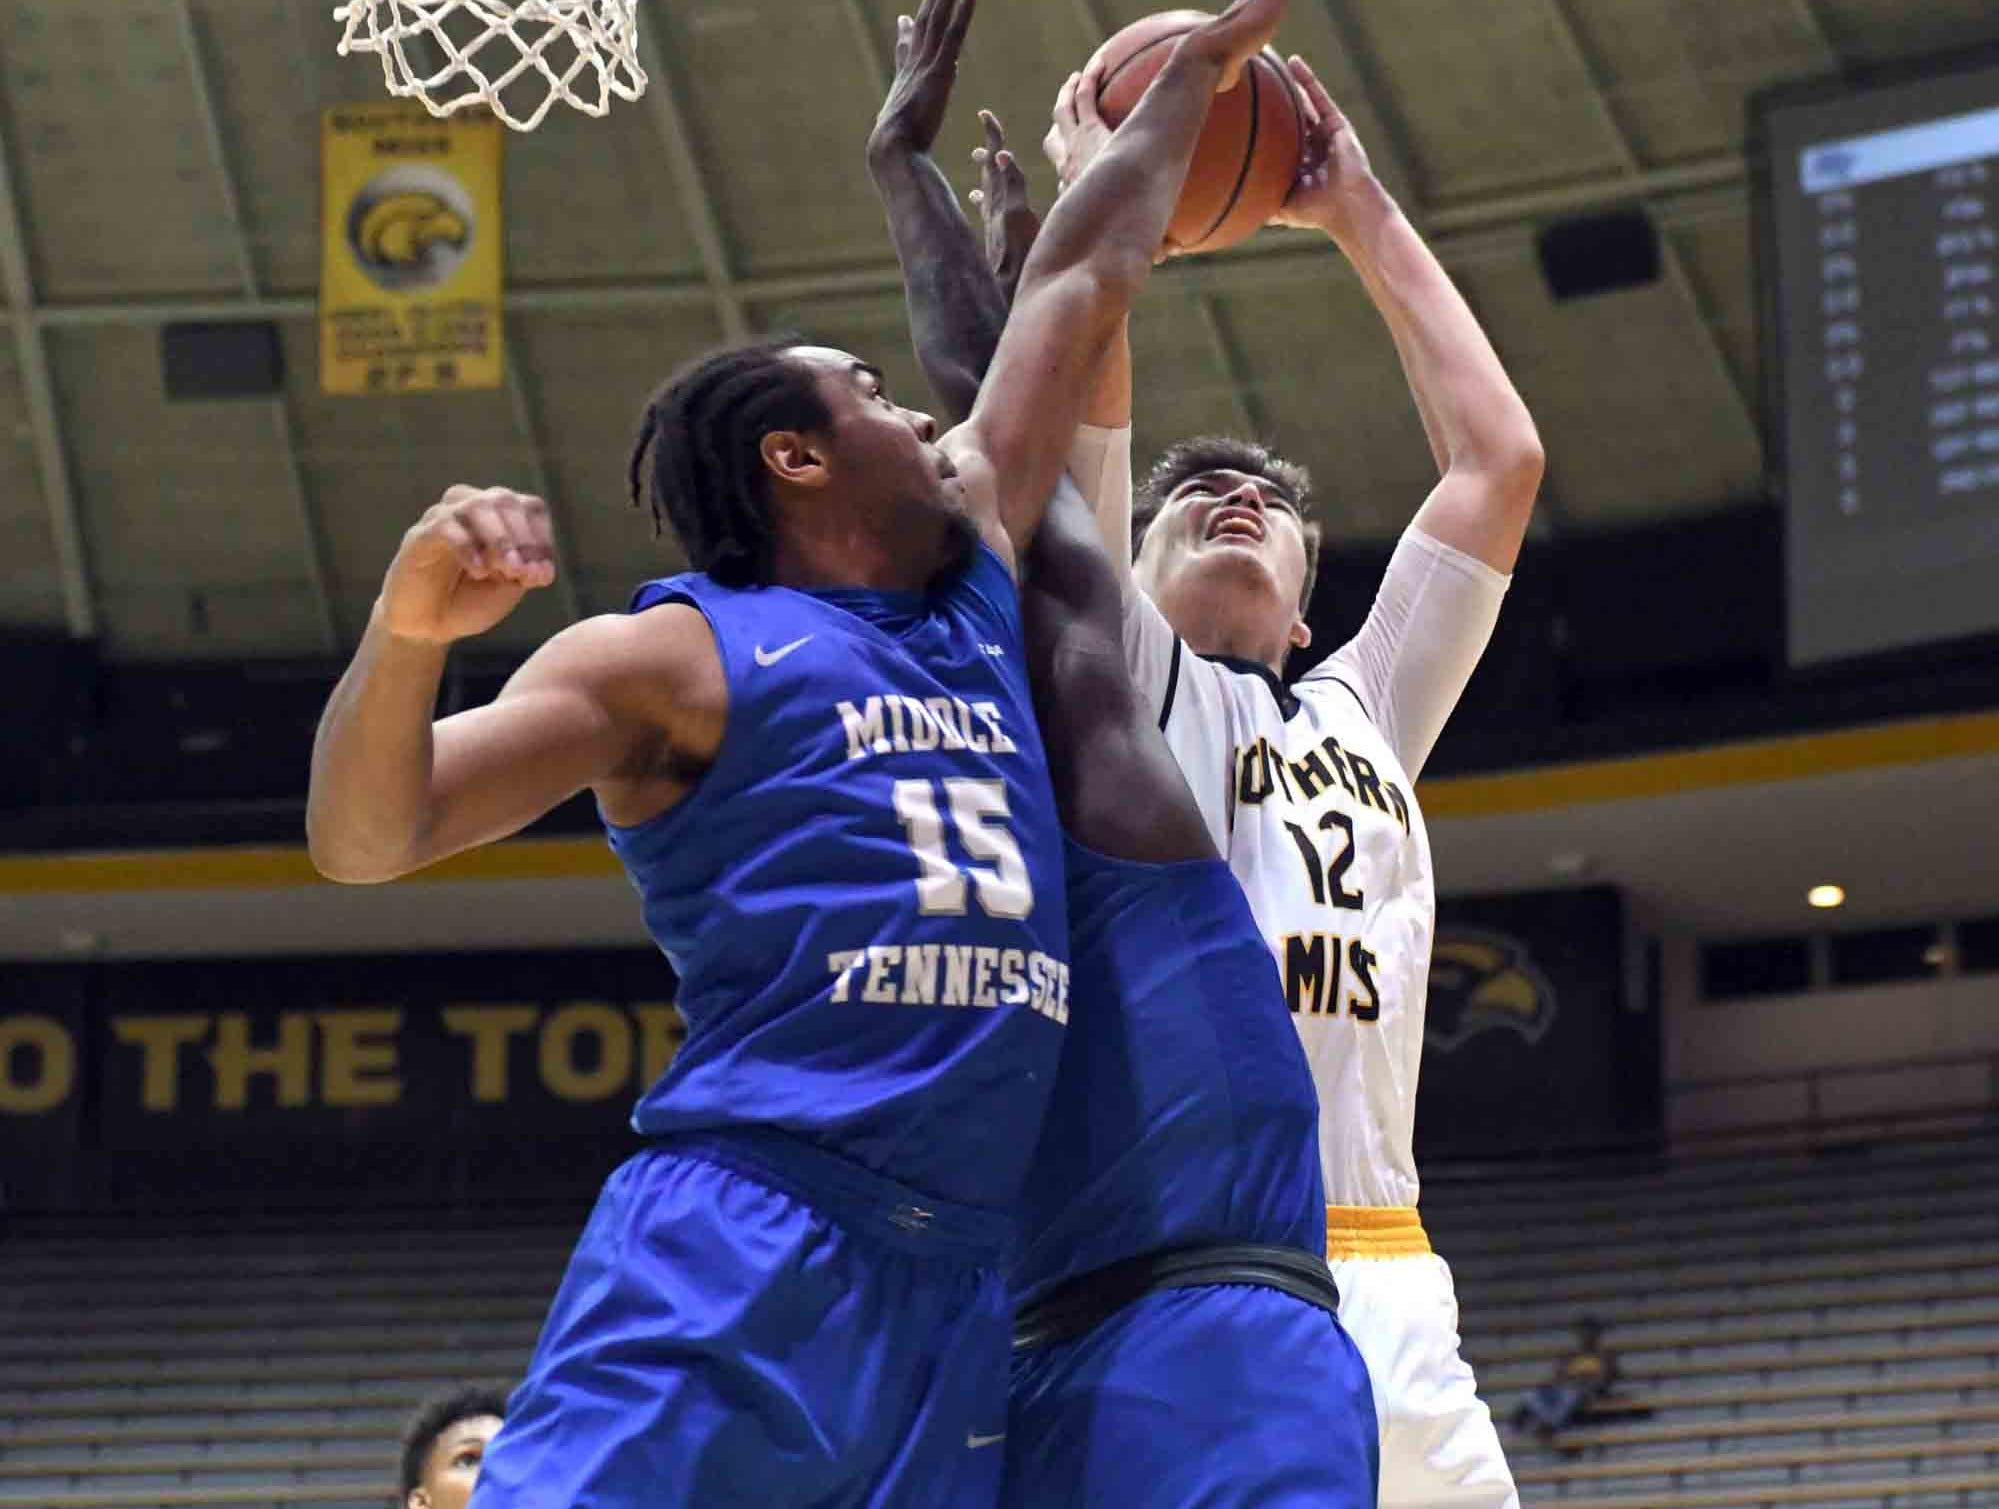 Southern Miss forward Tim Rowe shoots for the basket in a  game against Middle Tennessee in Reed Green Coliseum on Thursday, January 10, 2019.